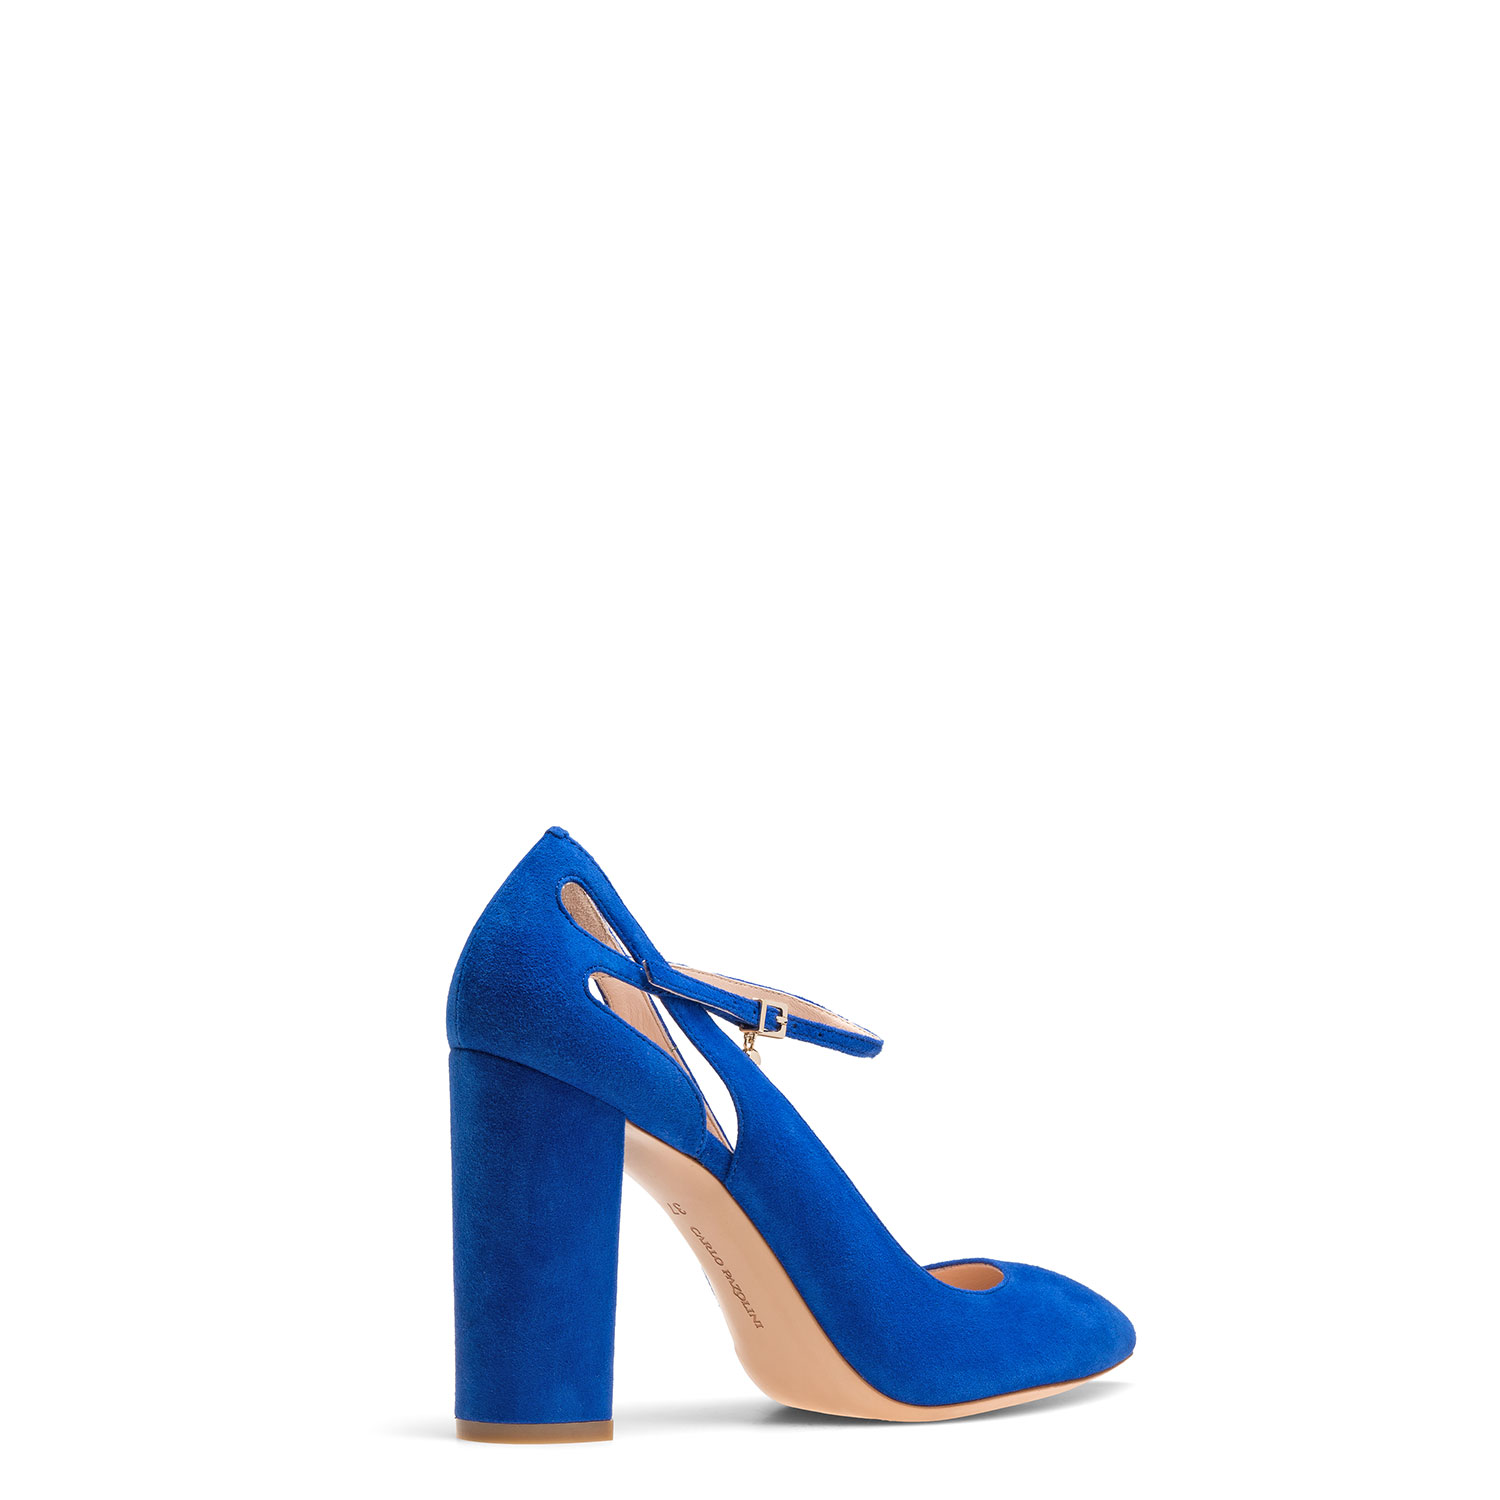 Women's shoes CARLO PAZOLINI FL-FLN3-6